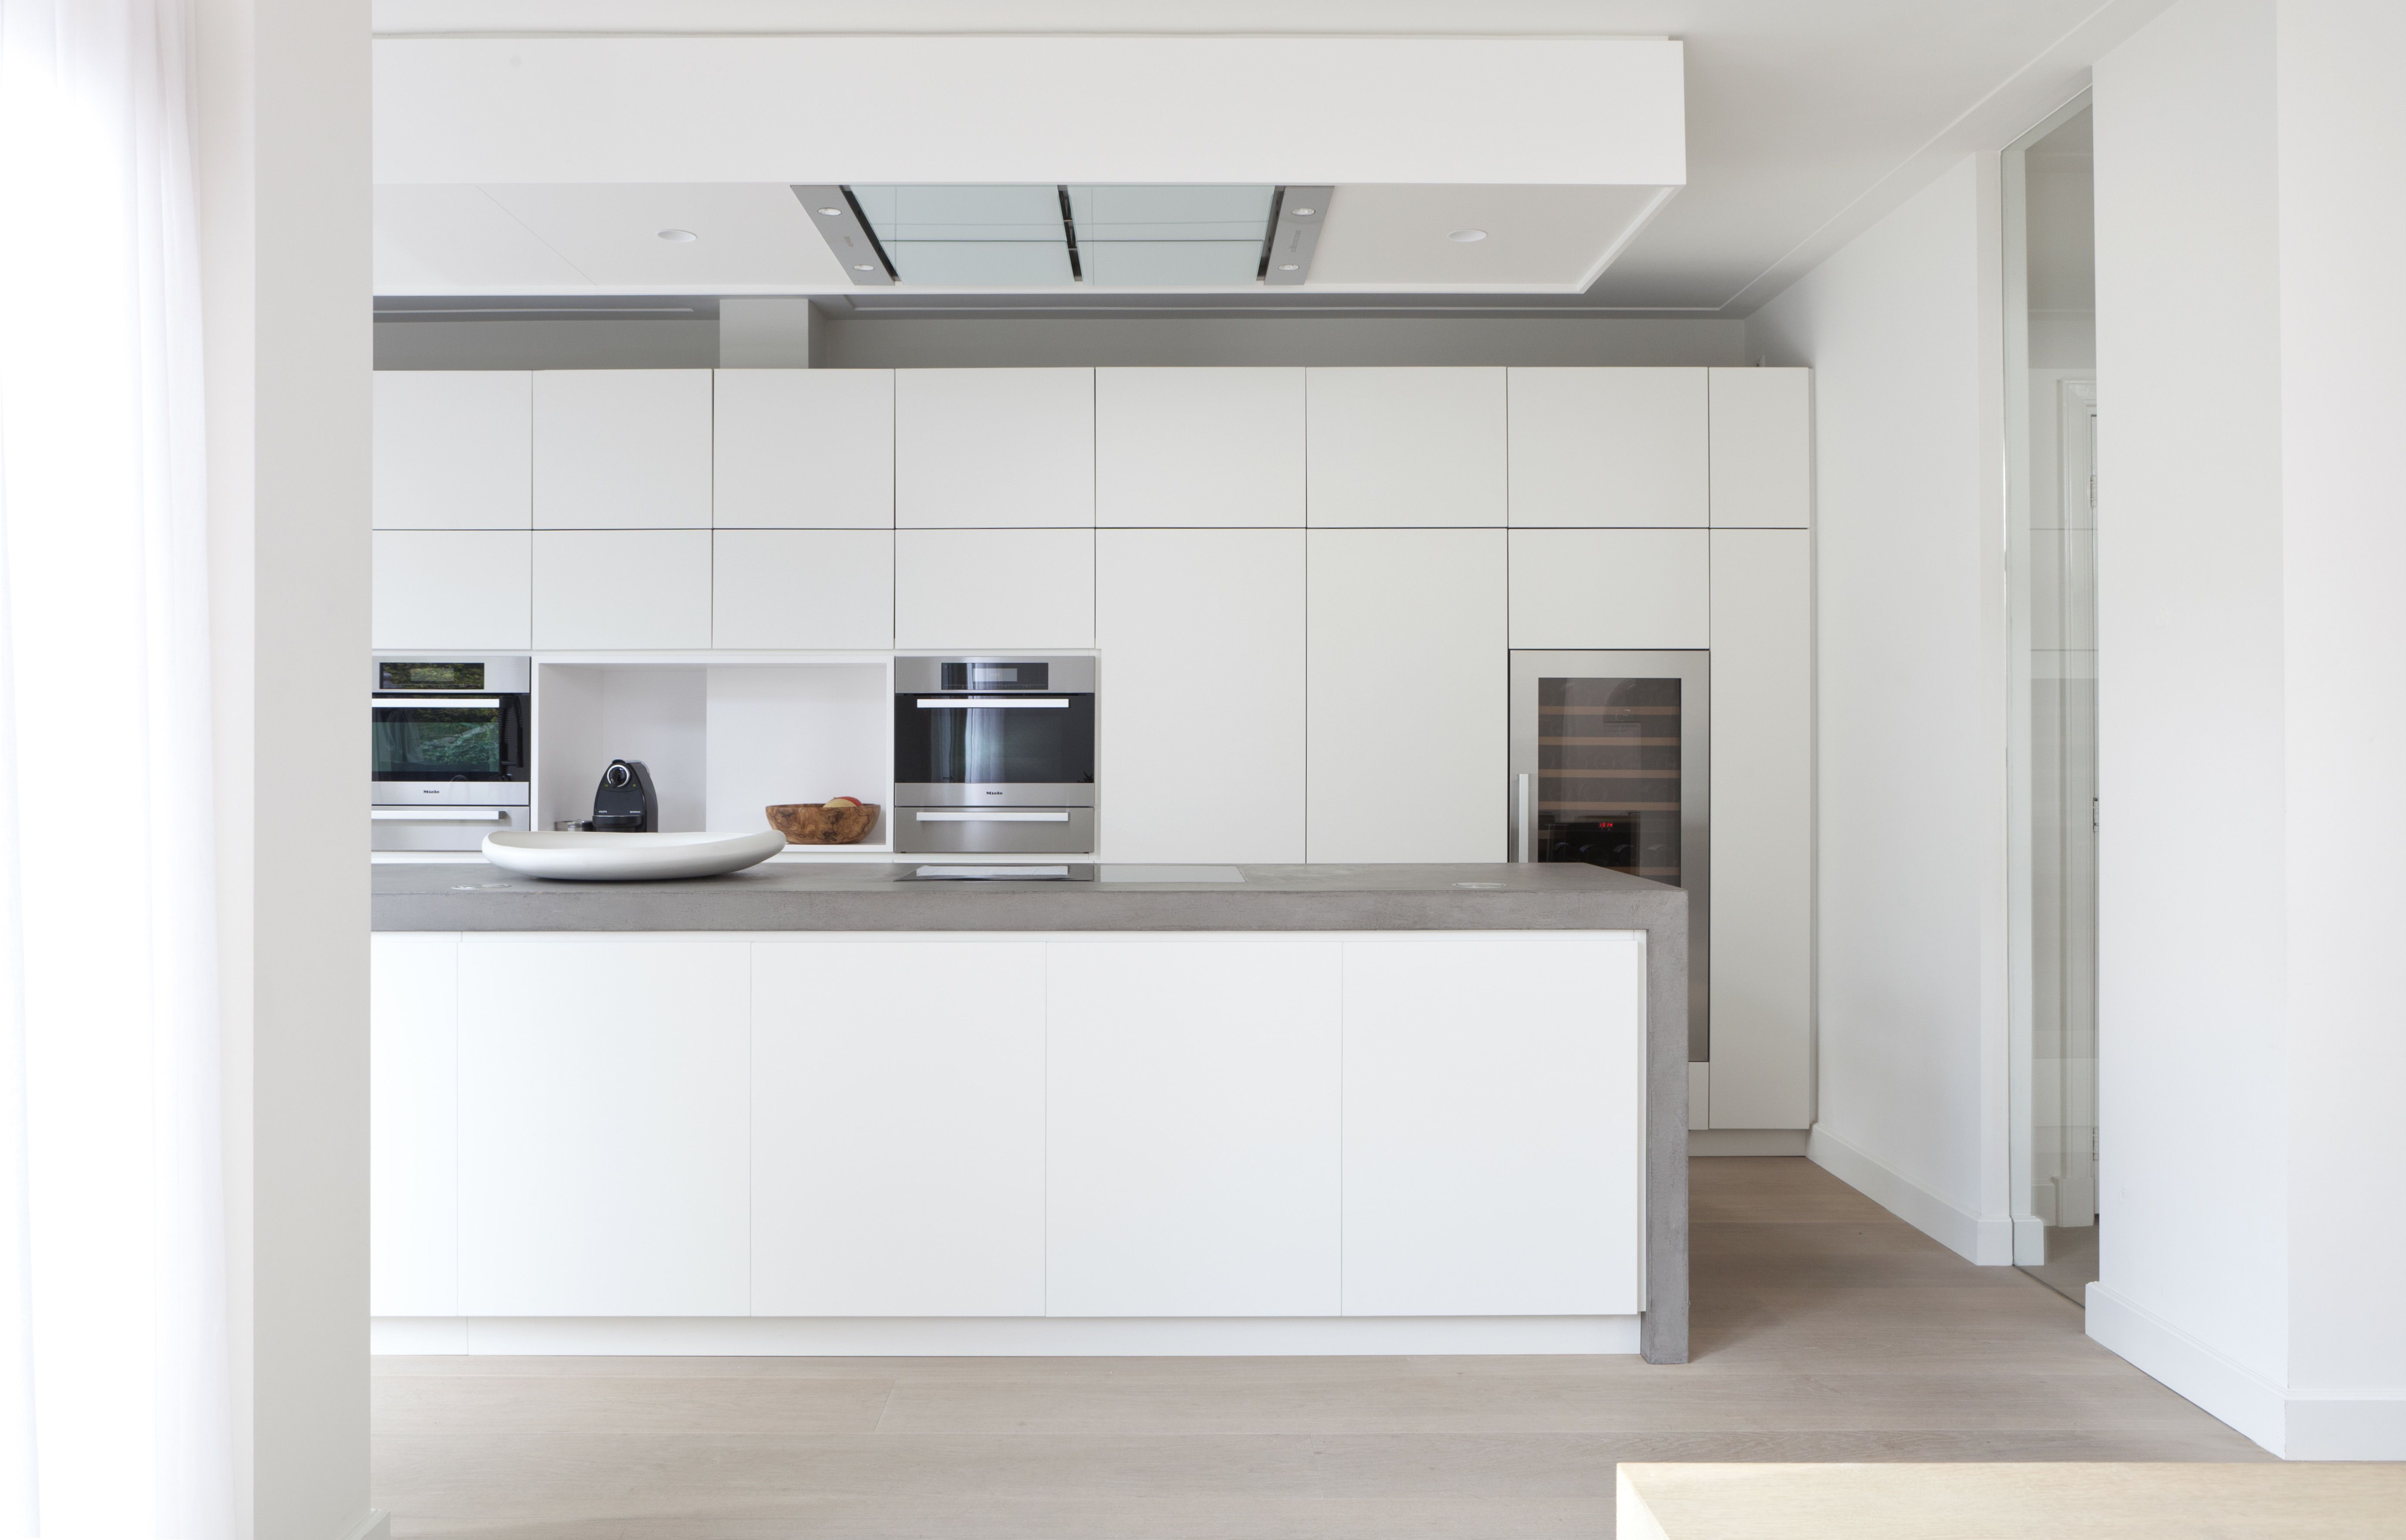 Townhouse at the park; kitchen; design Remy Meijers | kool kitchens ...